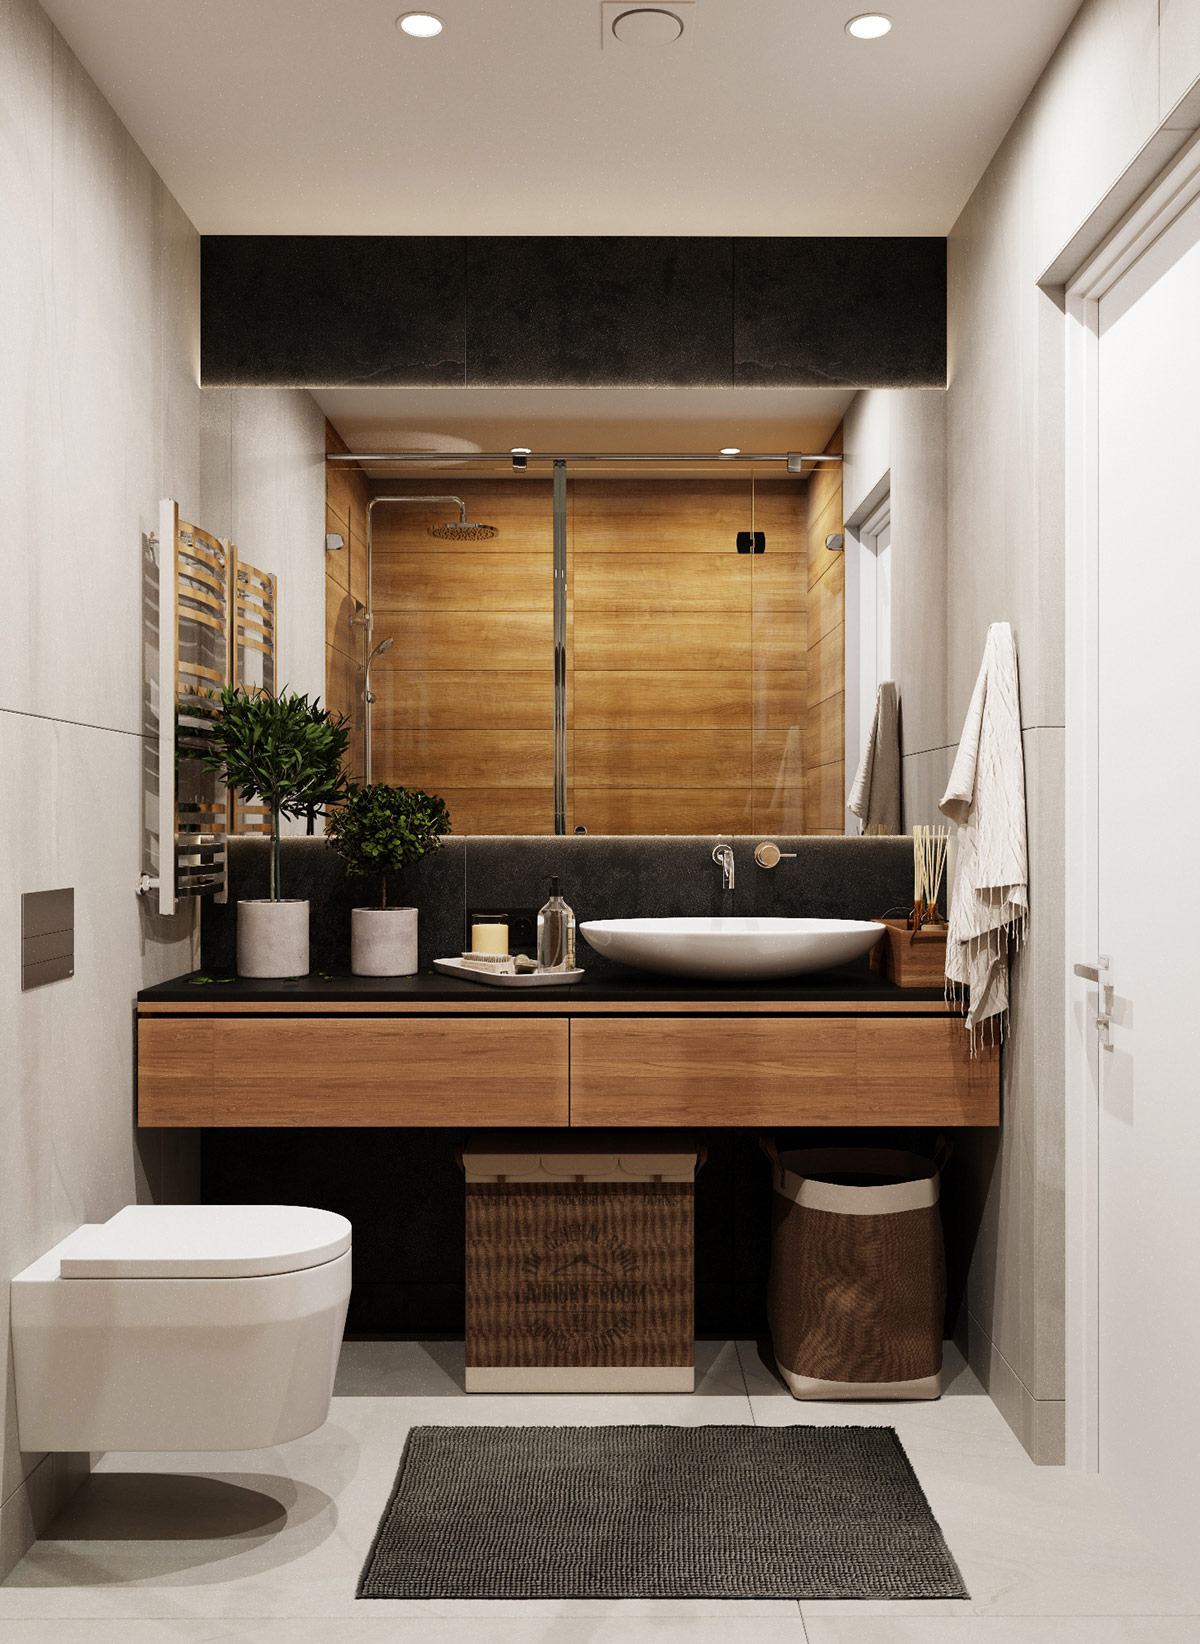 simple-wood-and-stone-luxury-bathroom-vanity-design